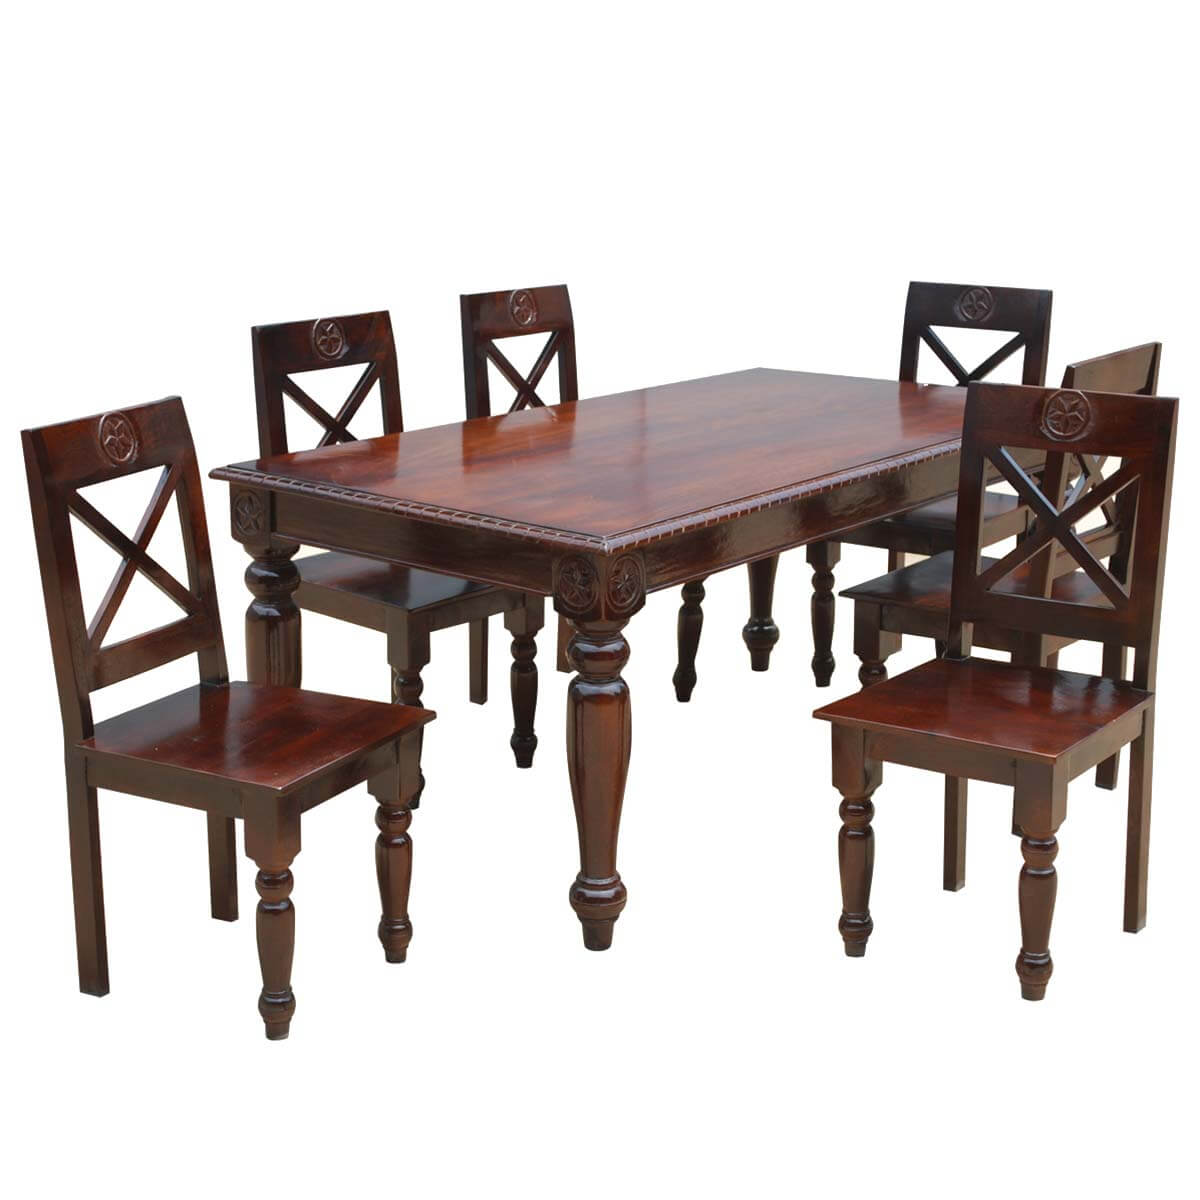 Rustic Dining Chairs Texas Rustic Dining Table And Chairs Set